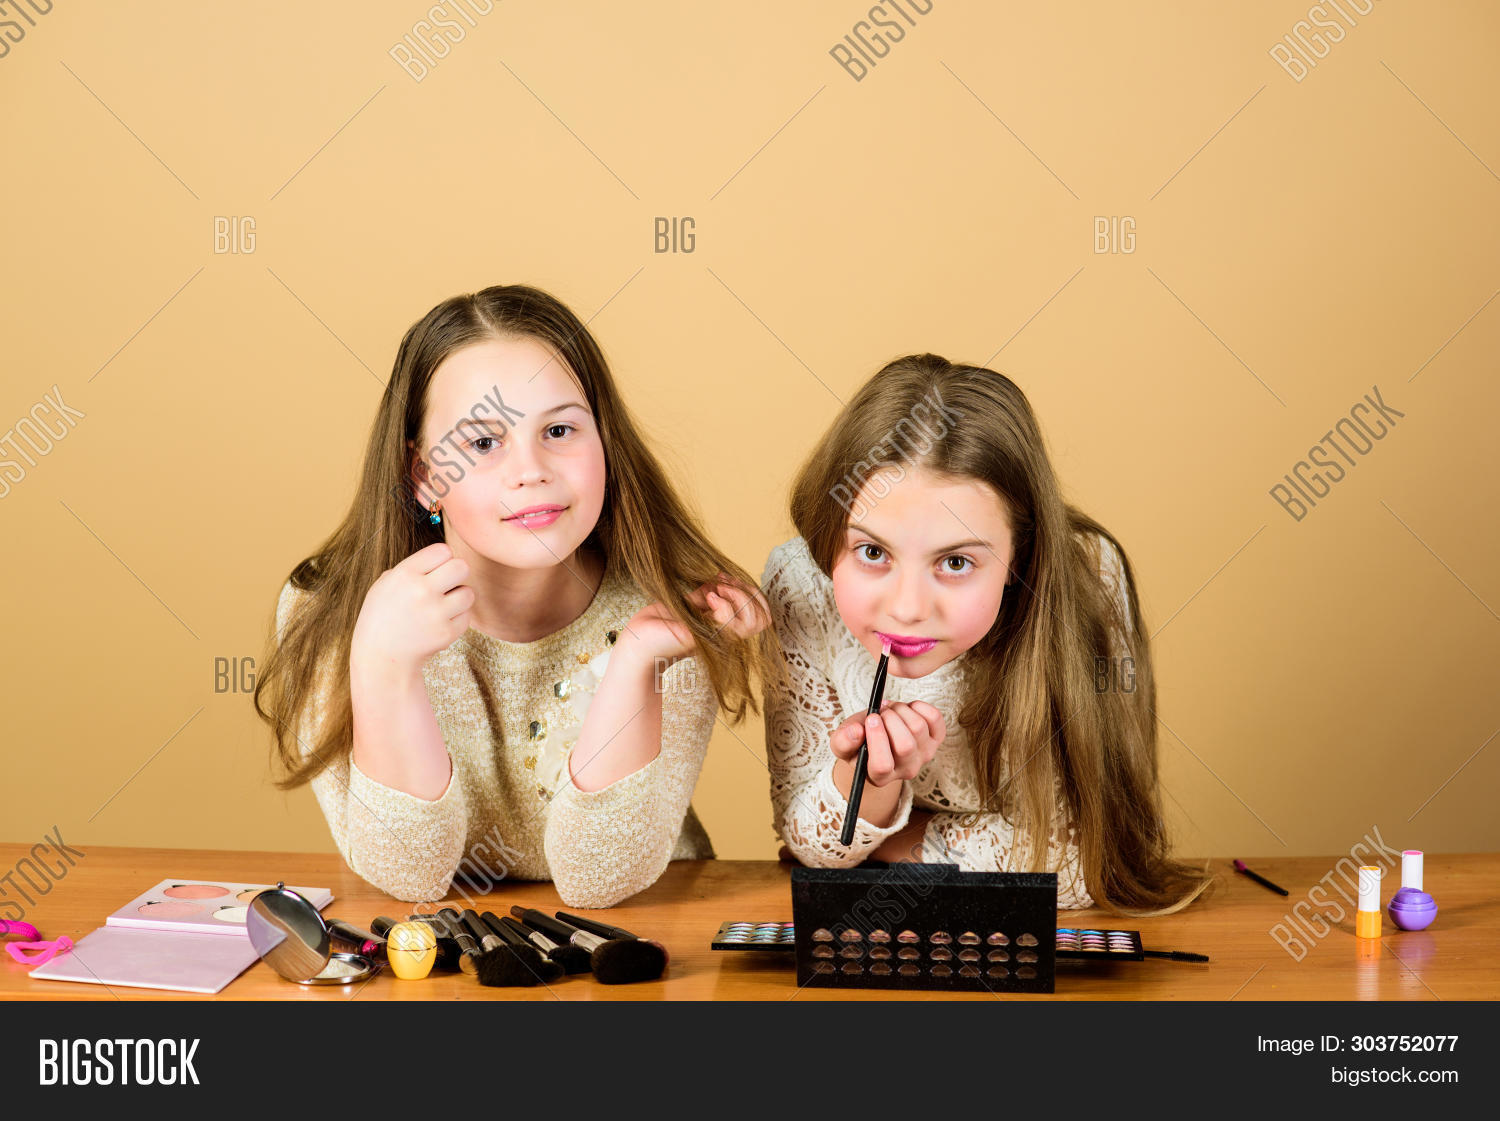 adorable,apply,applying,art,artists,babies,beautiful,beauty,children,collection,colour,cosmetic,cute,decorative,designer,expert,face,facial,girls,glitter,glittering,gloss,glow,hair,kids,lipgloss,lips,lipstick,little,long,look,make-up,makeover,makeup,paint,painting,pretty,products,salon,sisters,skin,skincare,small,stylish,tools,tutorial,visage,visagiste